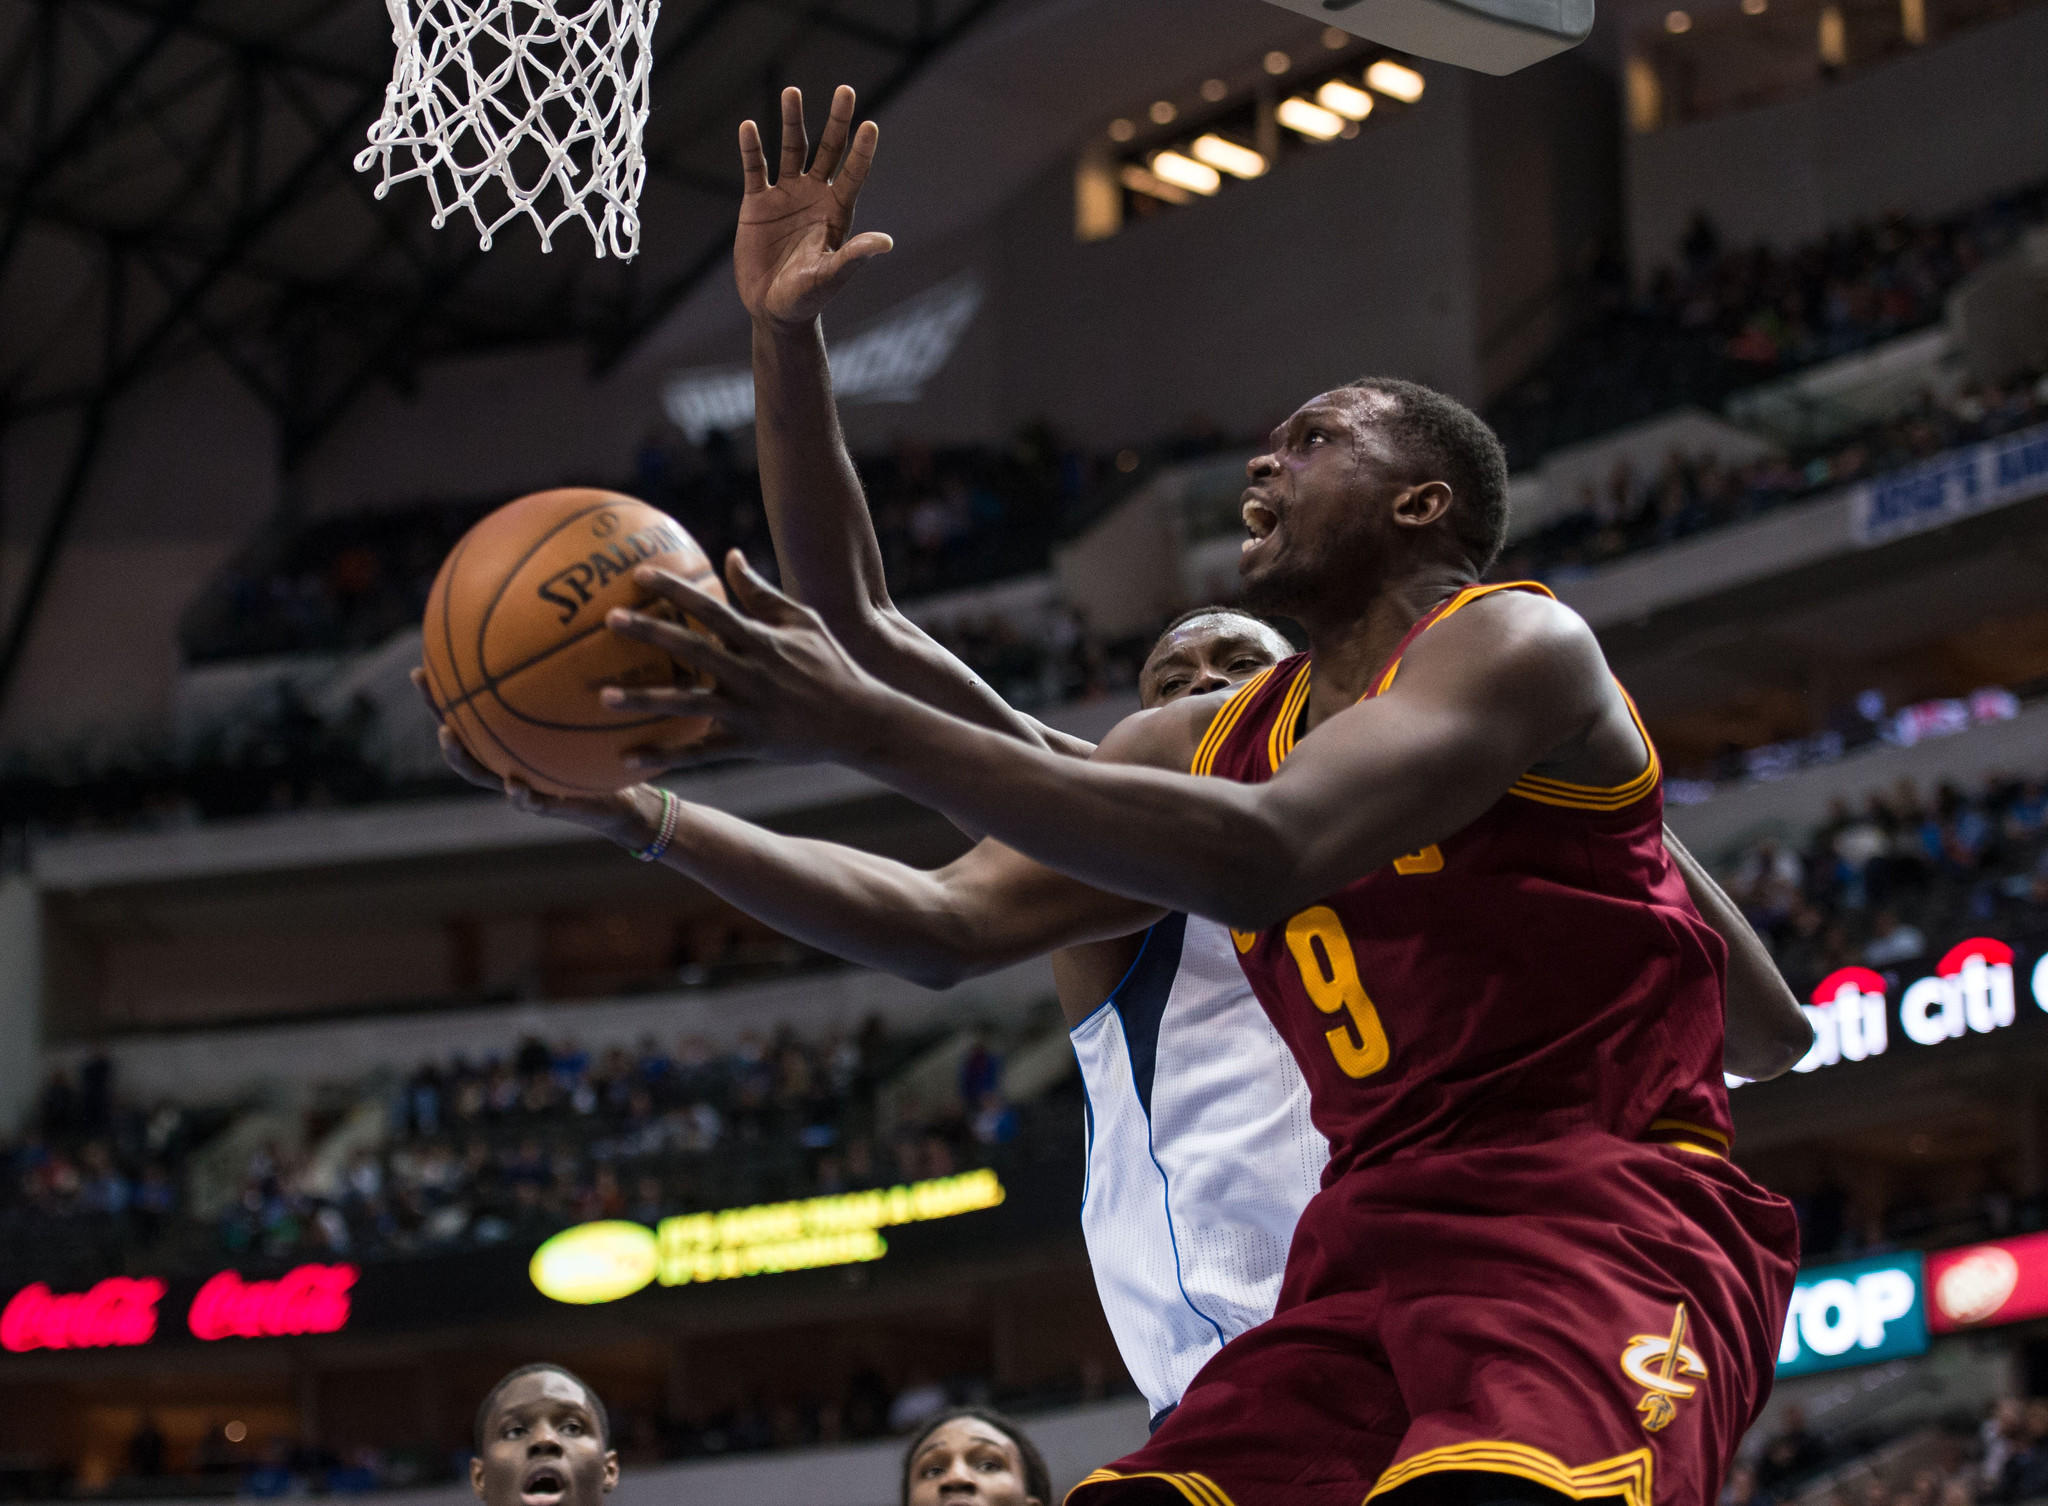 Cavaliers small forward Luol Deng drives to the basket past Mavericks center Samuel Dalembert during the second half at the American Airlines Center. The Mavericks defeated the Cavaliers 124-107.